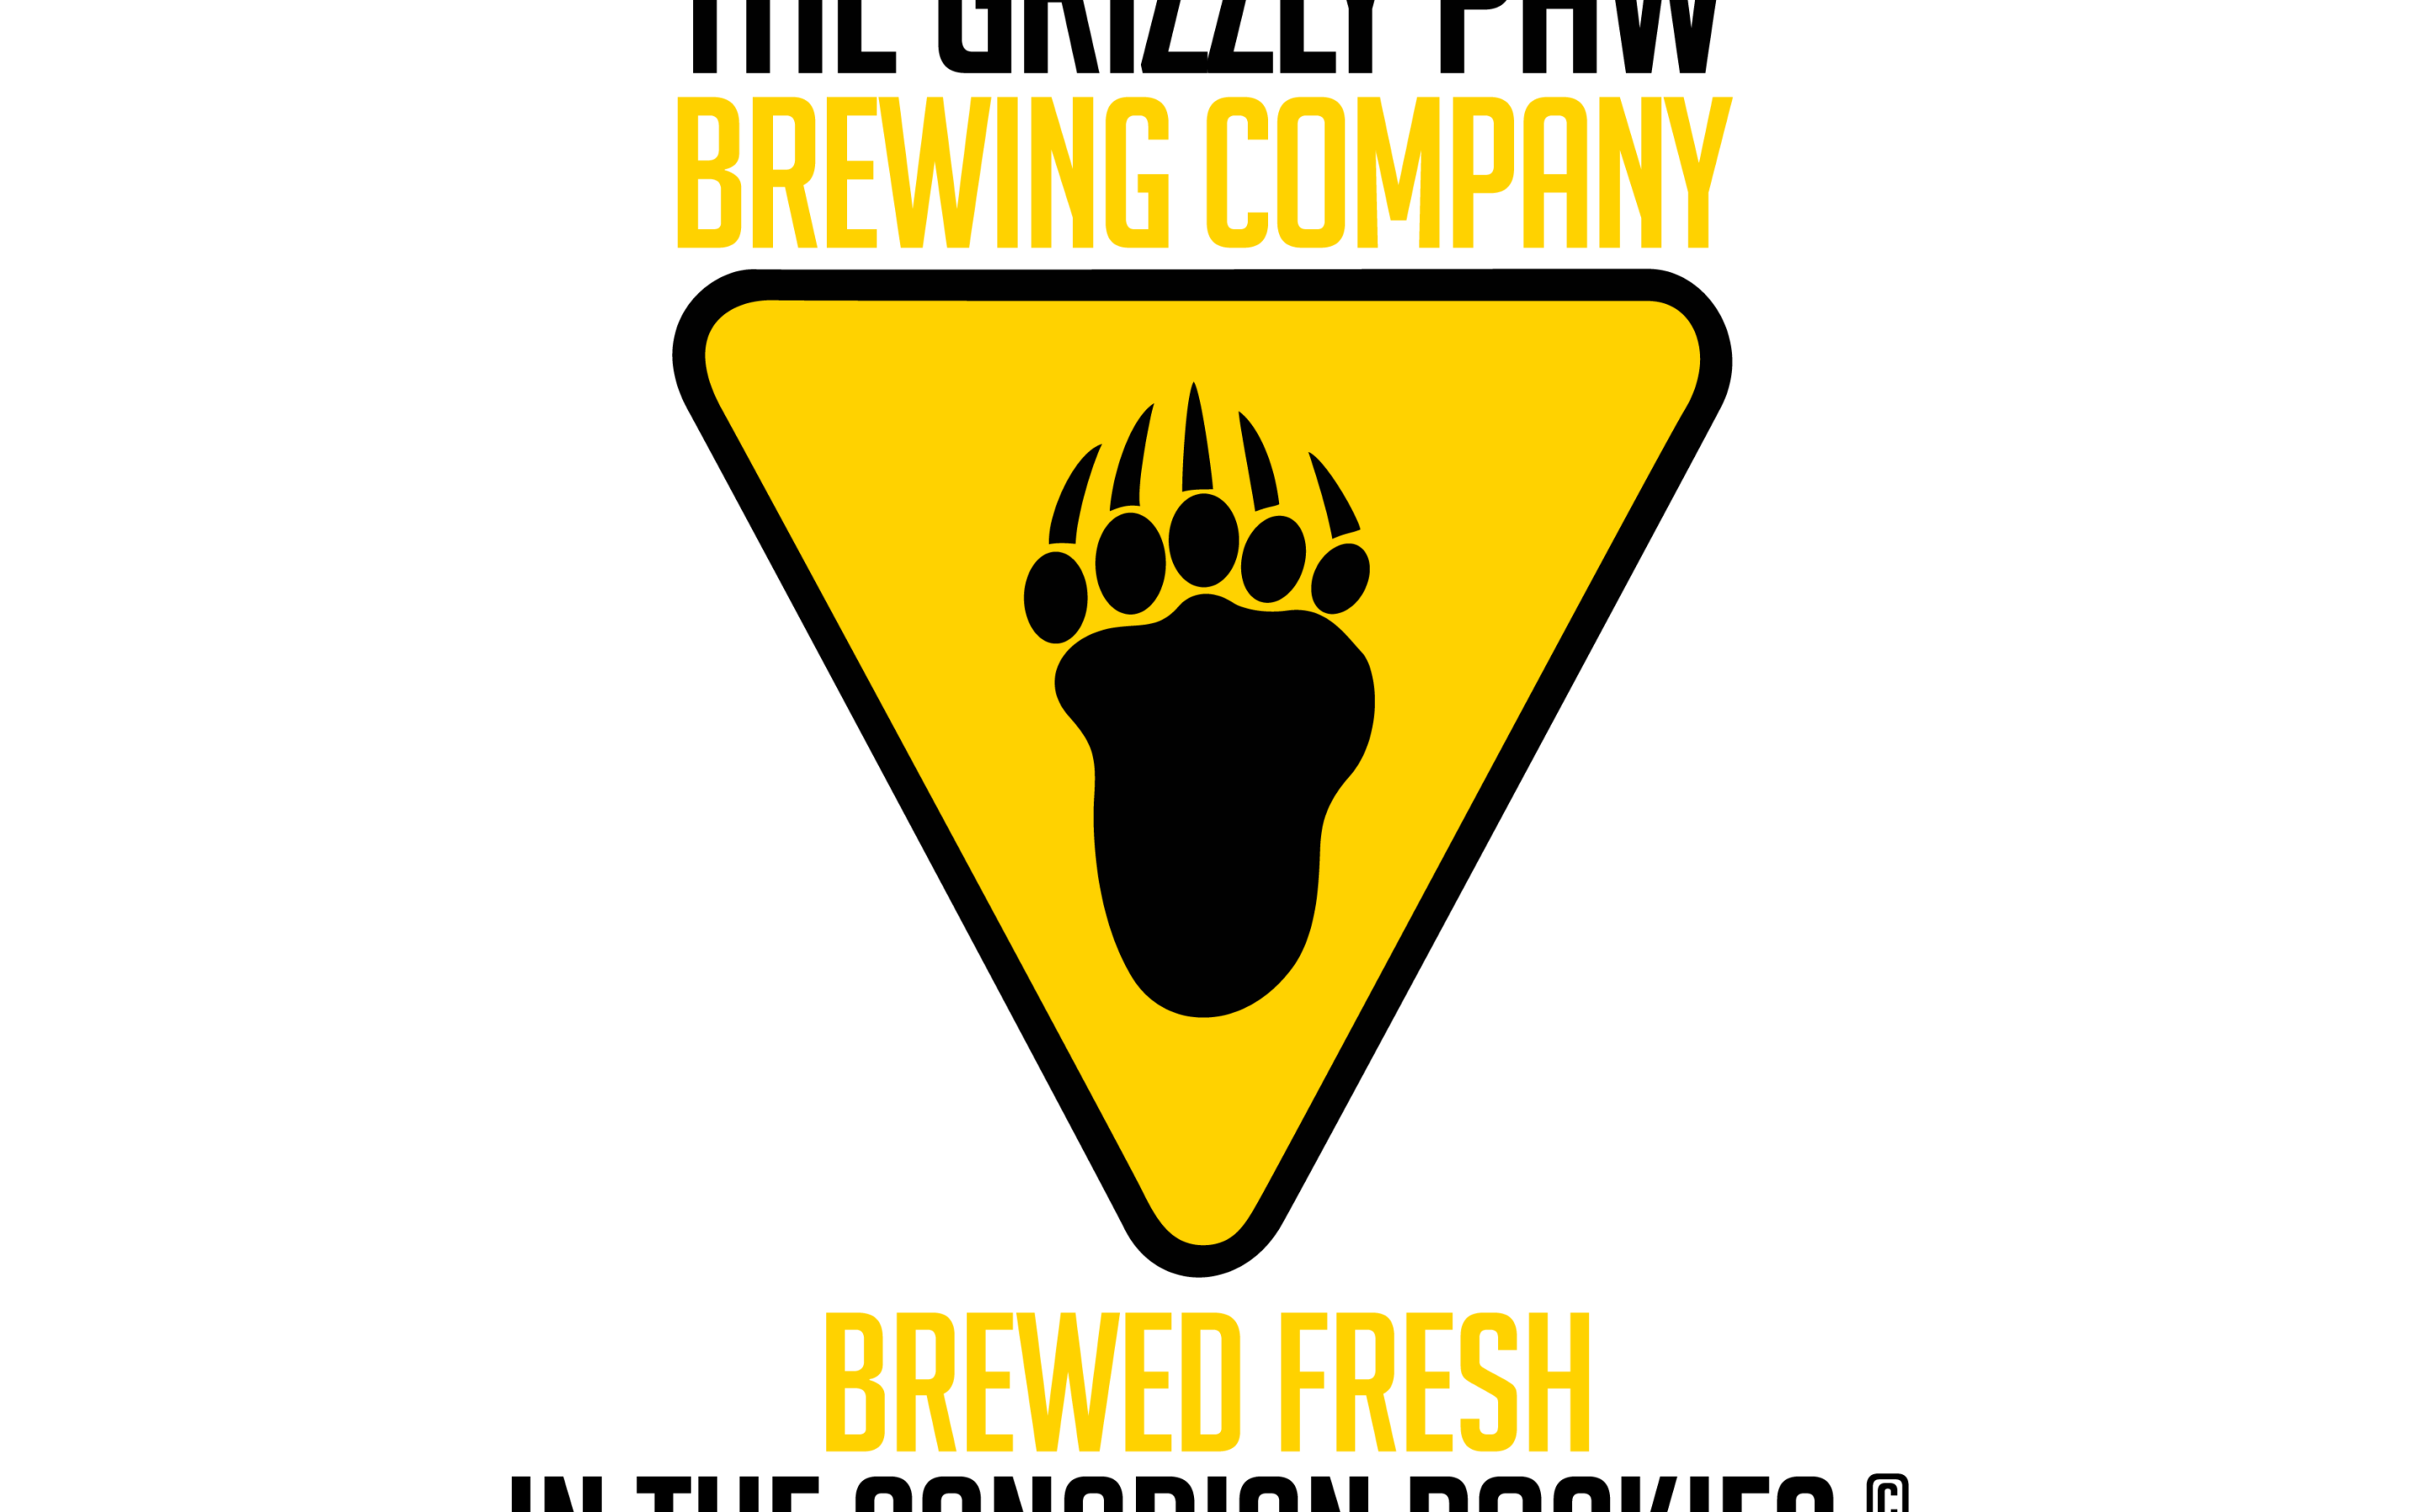 The Grizzly Paw Brewing Company